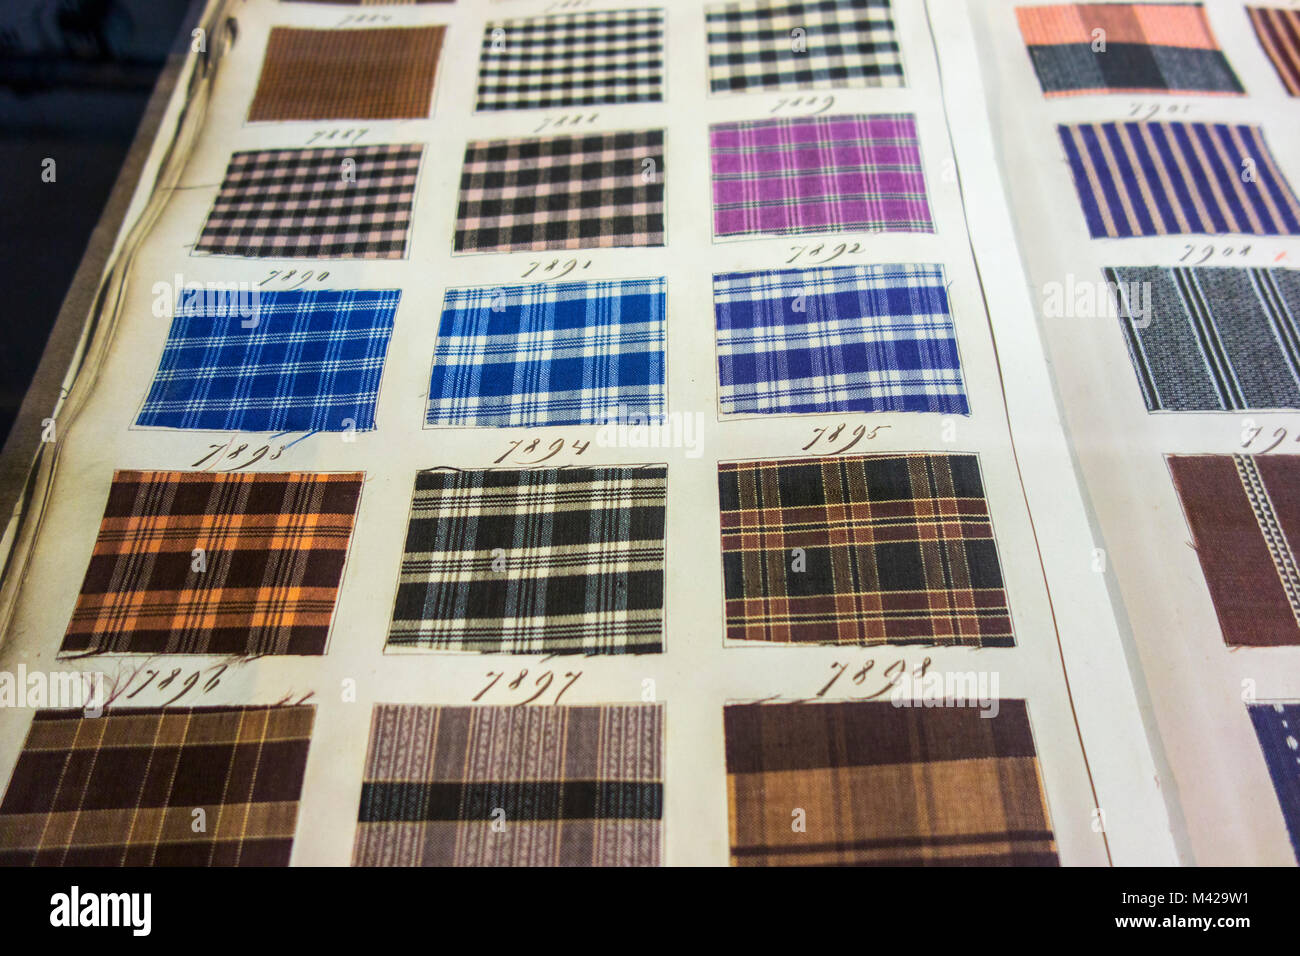 Page in old textile sample book showing chequered fabric samples with different weaving patterns and colour combinations - Stock Image